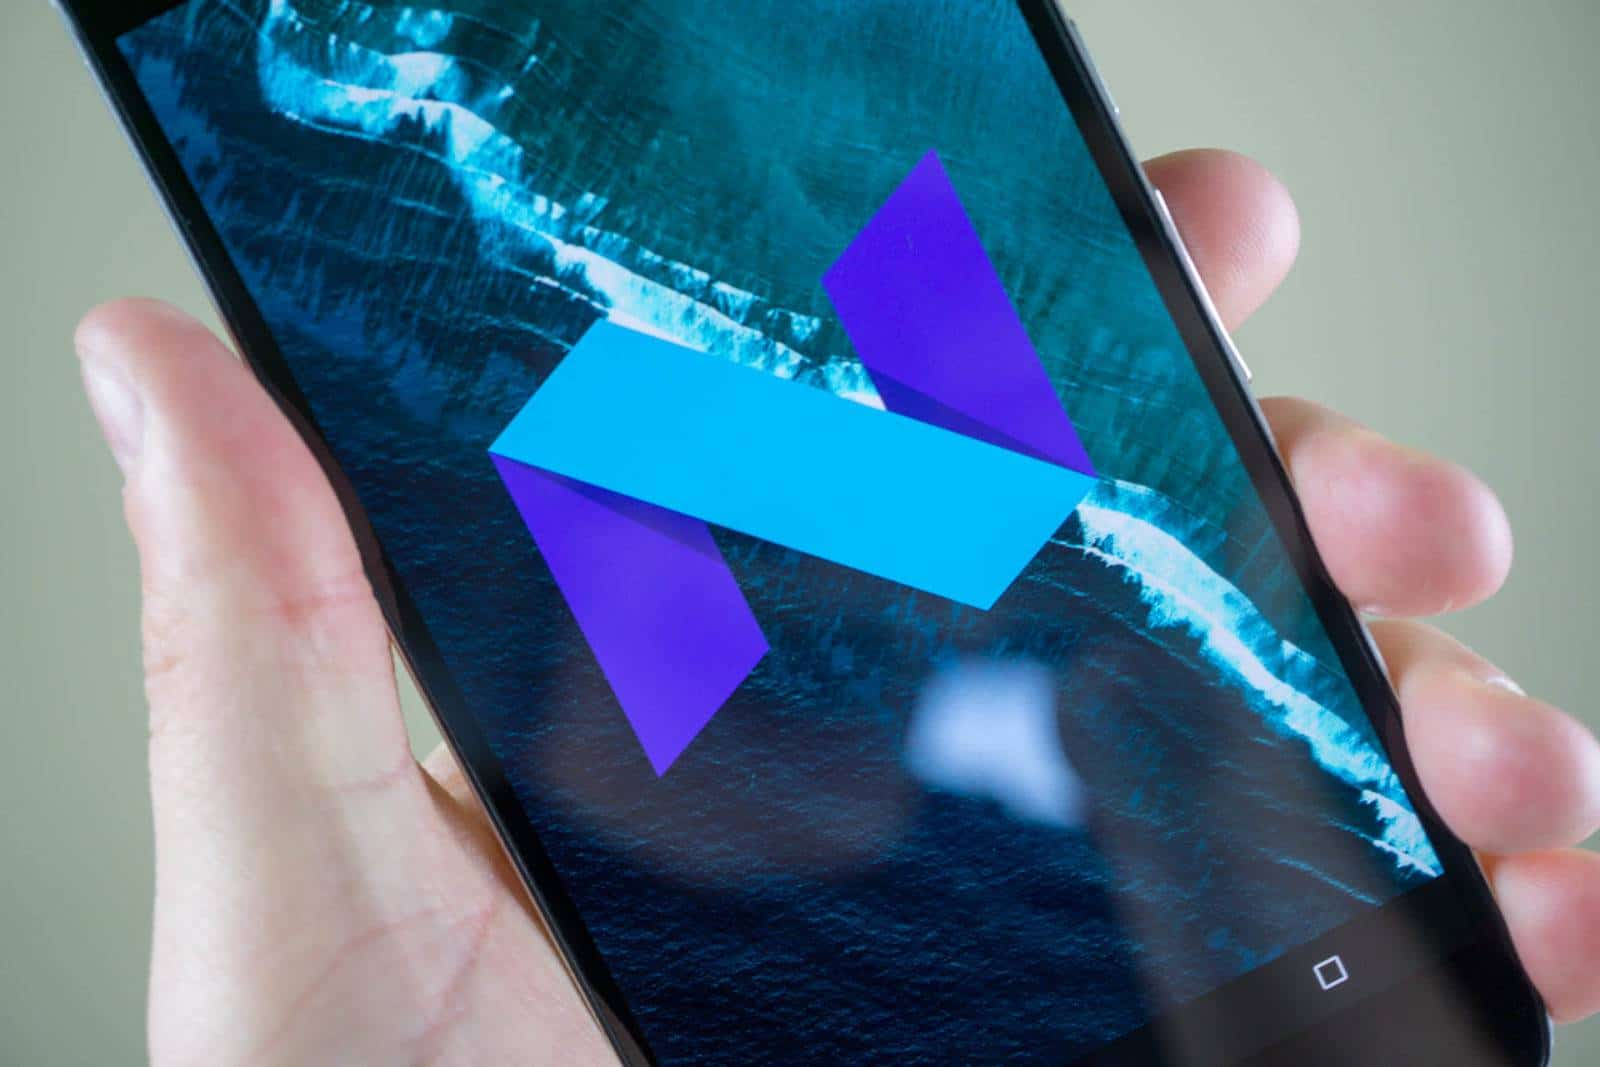 Android N Animations Shown off in Slow Motion ...